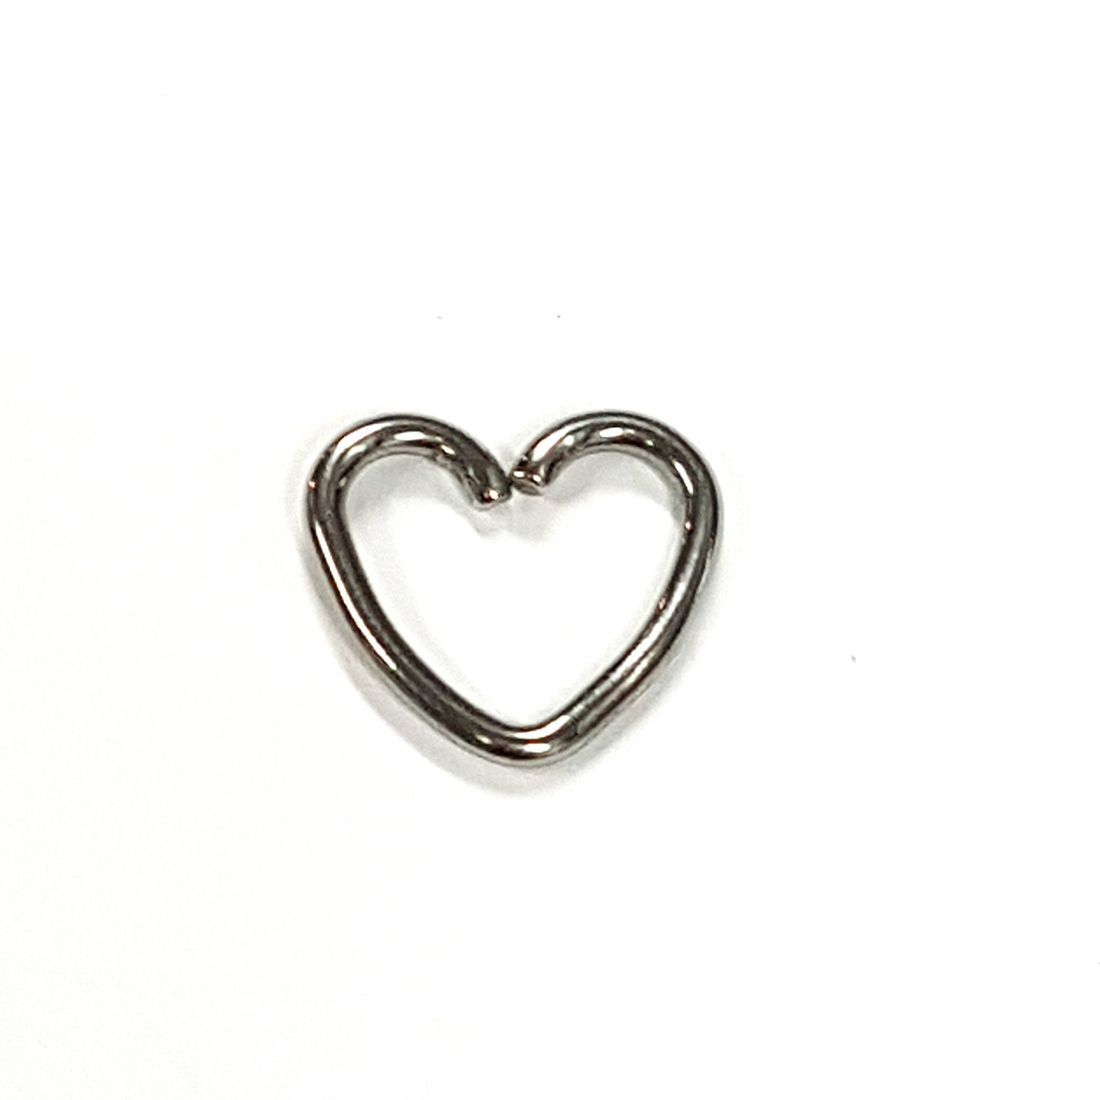 1.2mm x 8mm Silver Heart   available at Kazbah online and our Leicester City Centre Shop